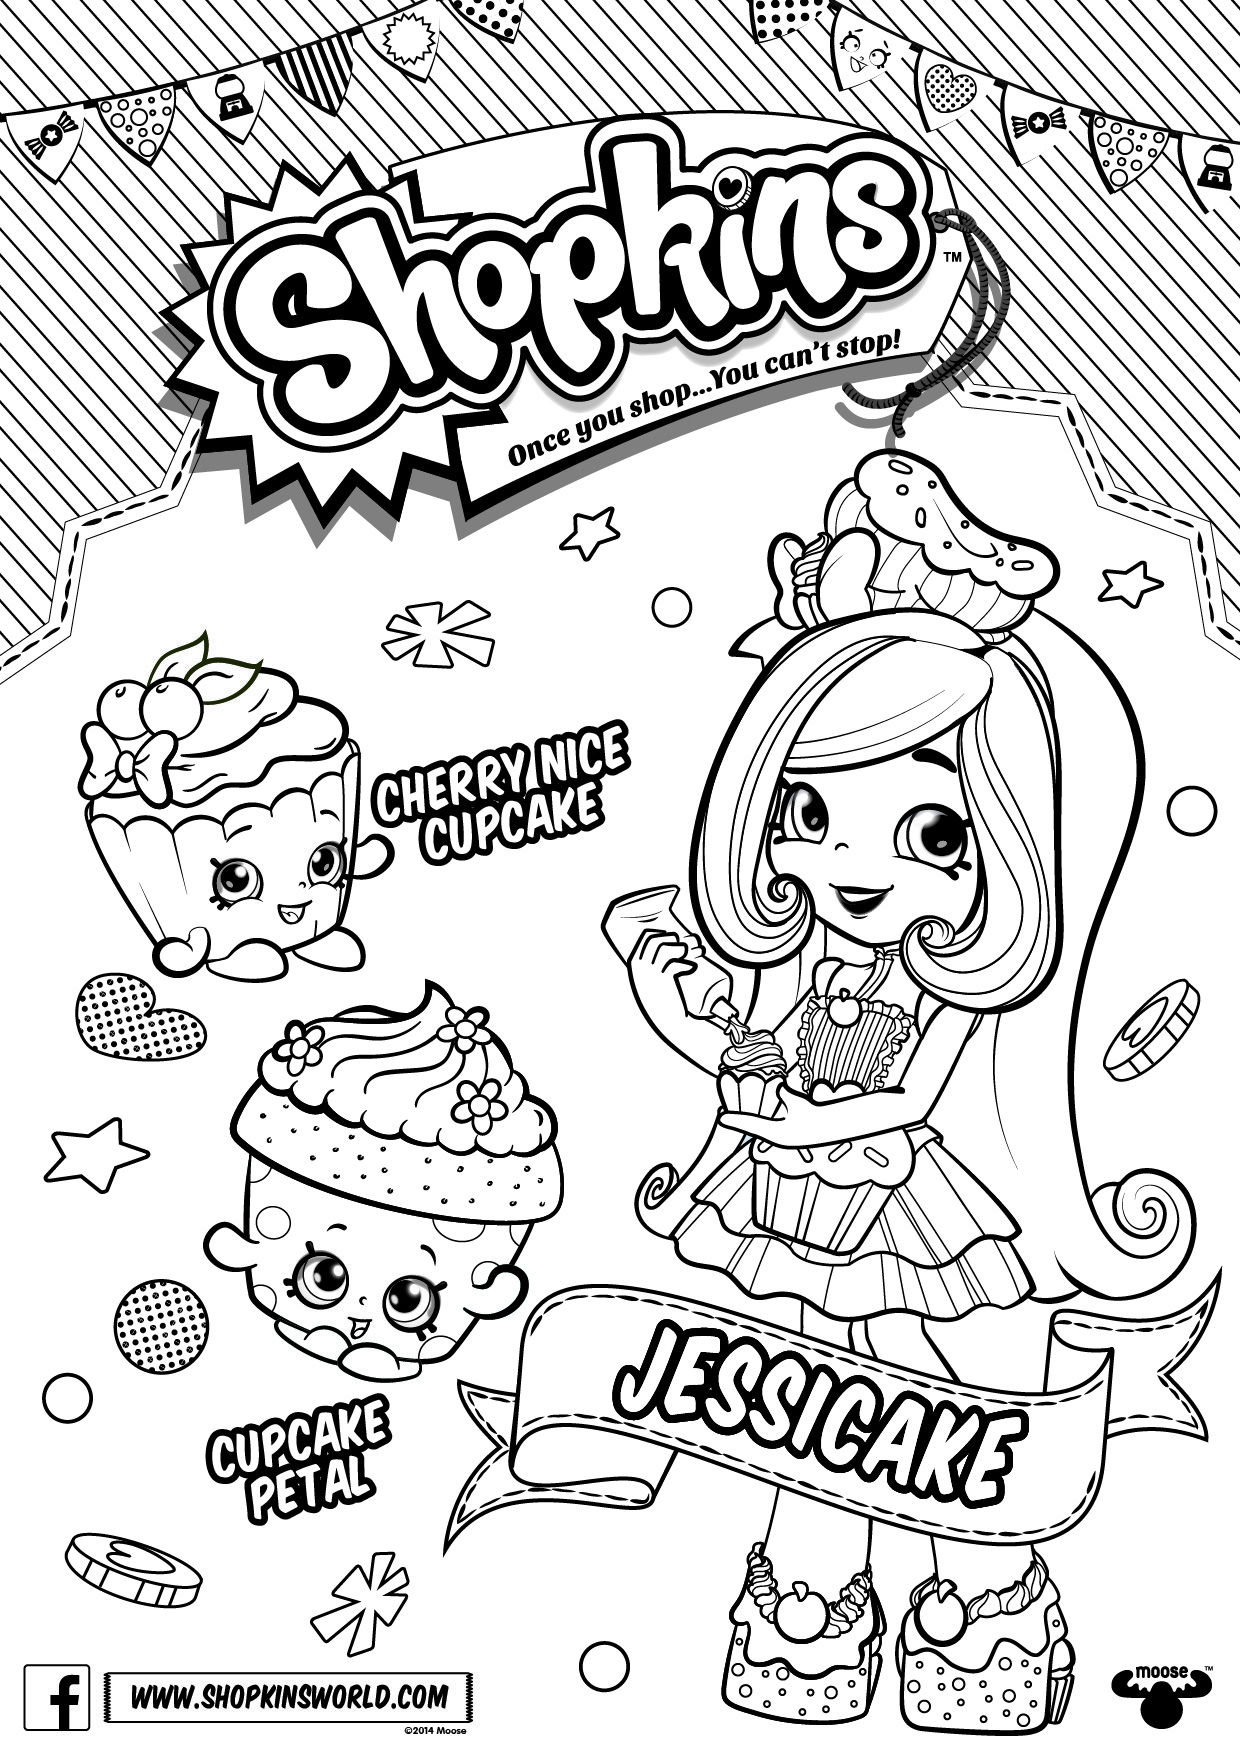 Shopkins coloring pages to color online - Find This Pin And More On Shopkins Shopkins Season 6 Chef Club Season Coloring Pages Printable